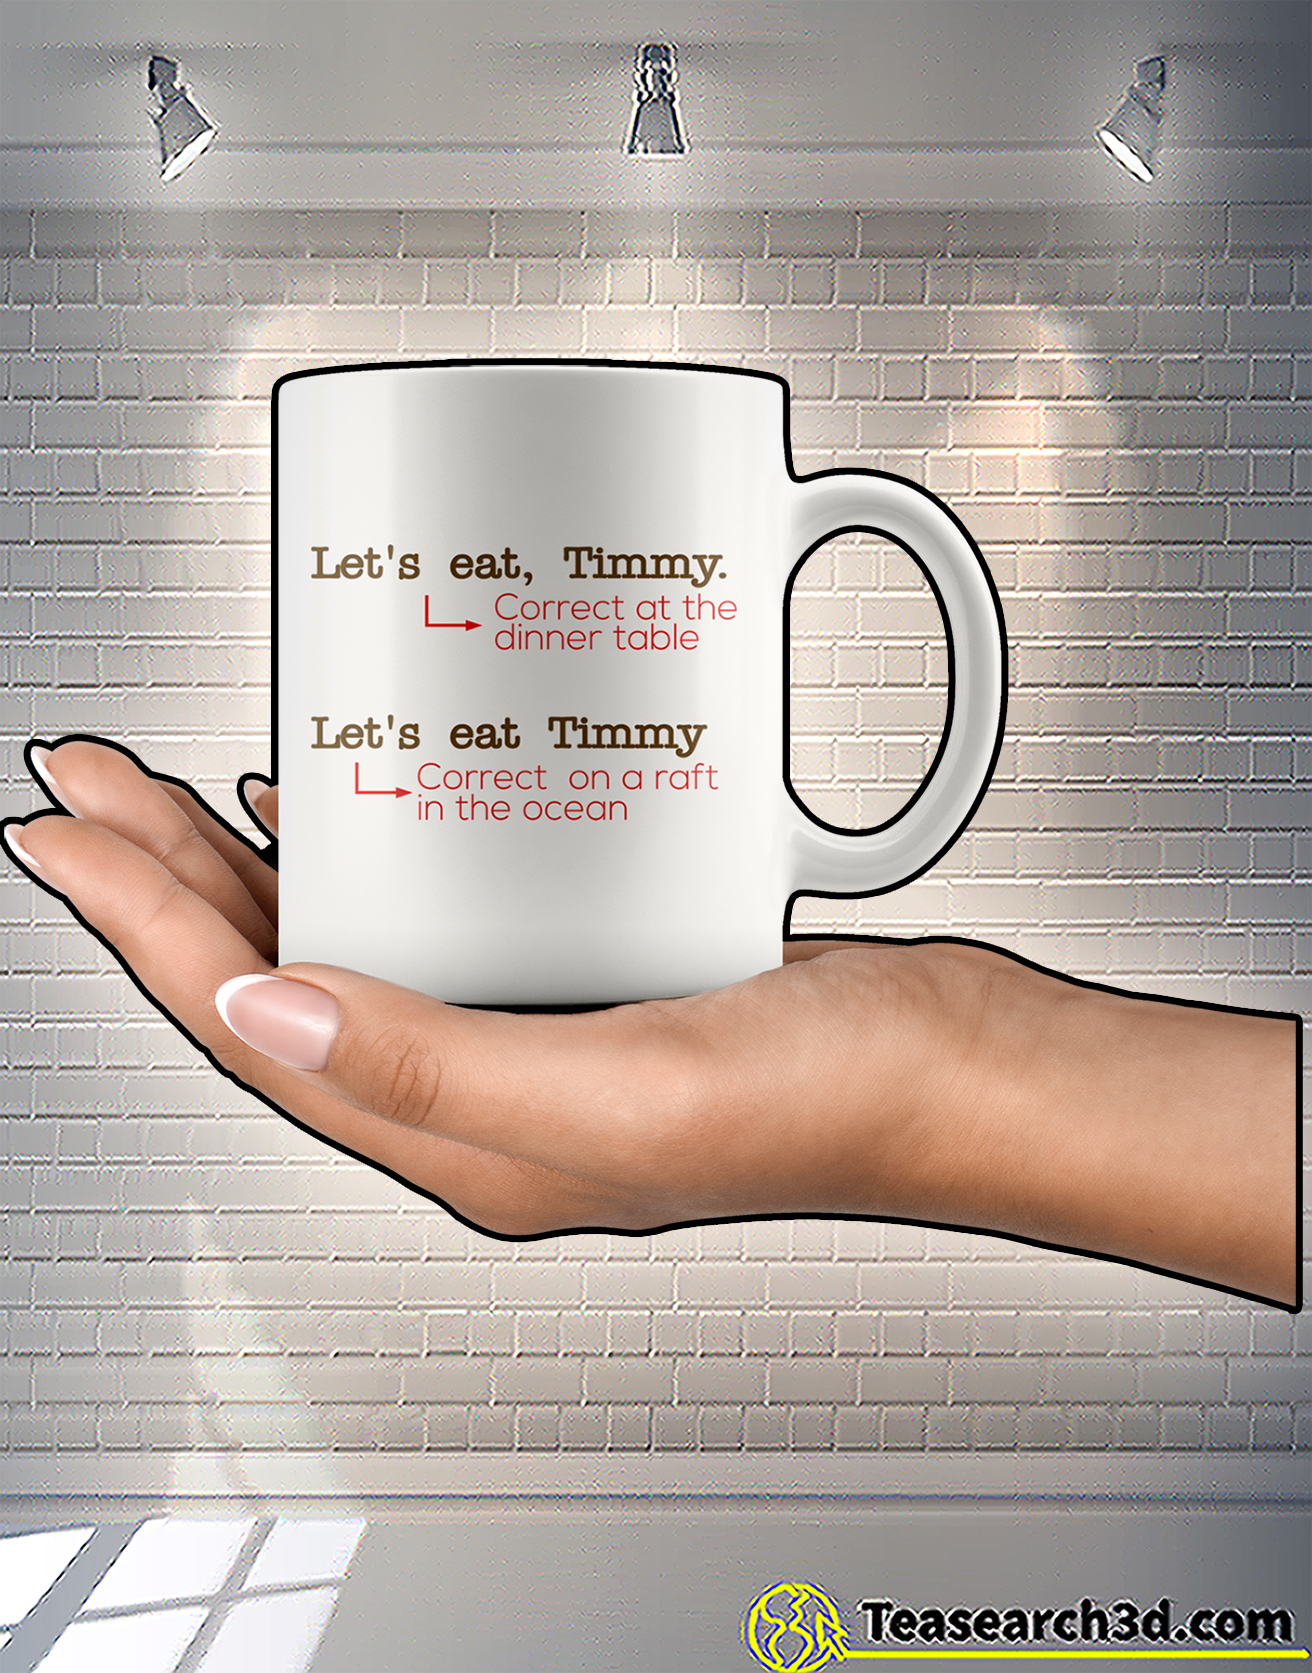 Let's eat timmy correct at the dinner table mug 2